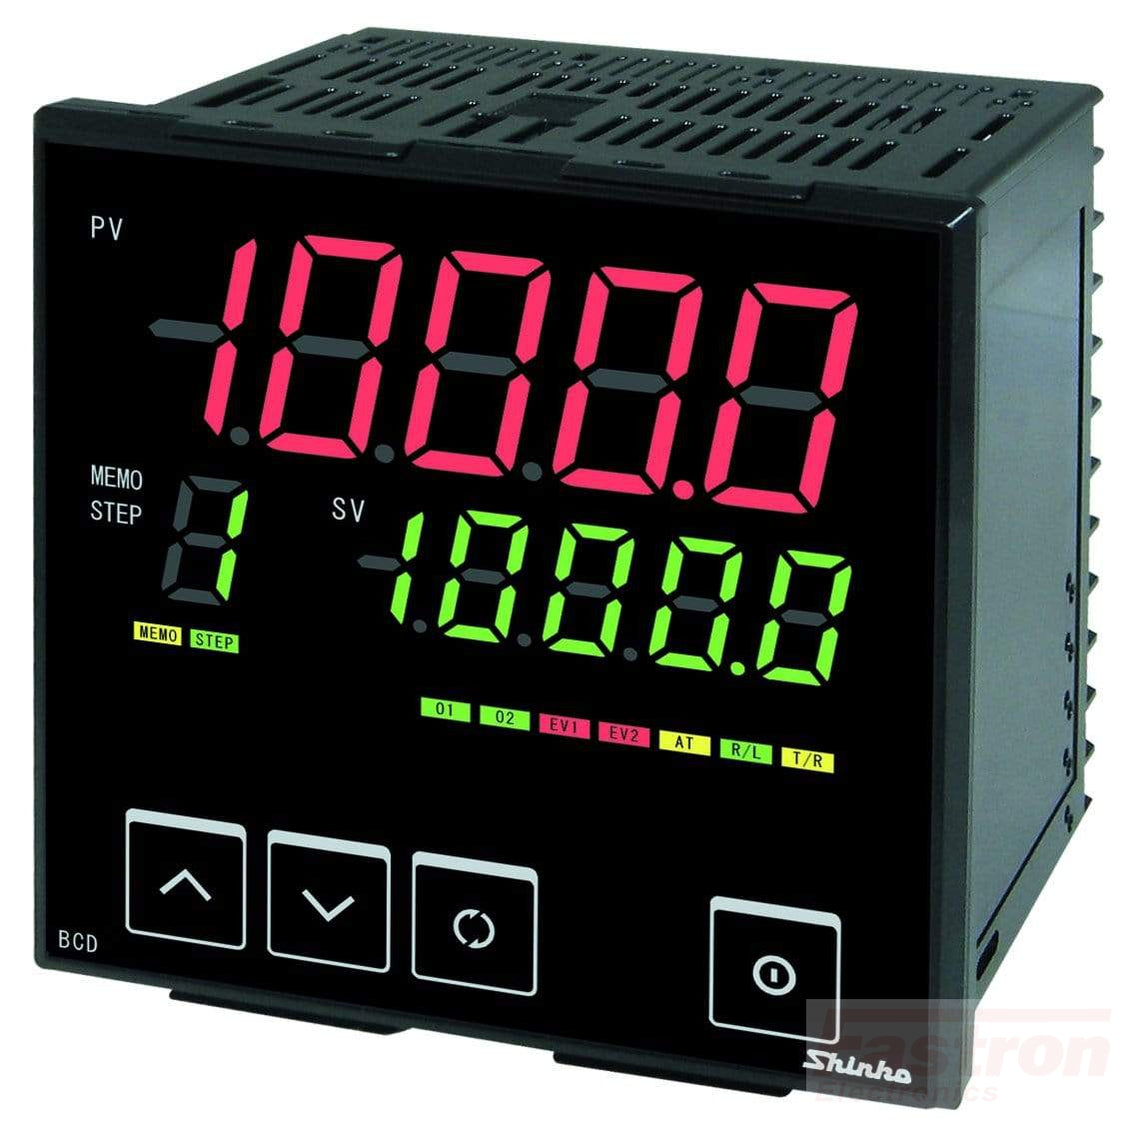 BCD2R1006 Temp Controller, 96x96mm, 24VAC/DC, SSR output, RS485 Comms